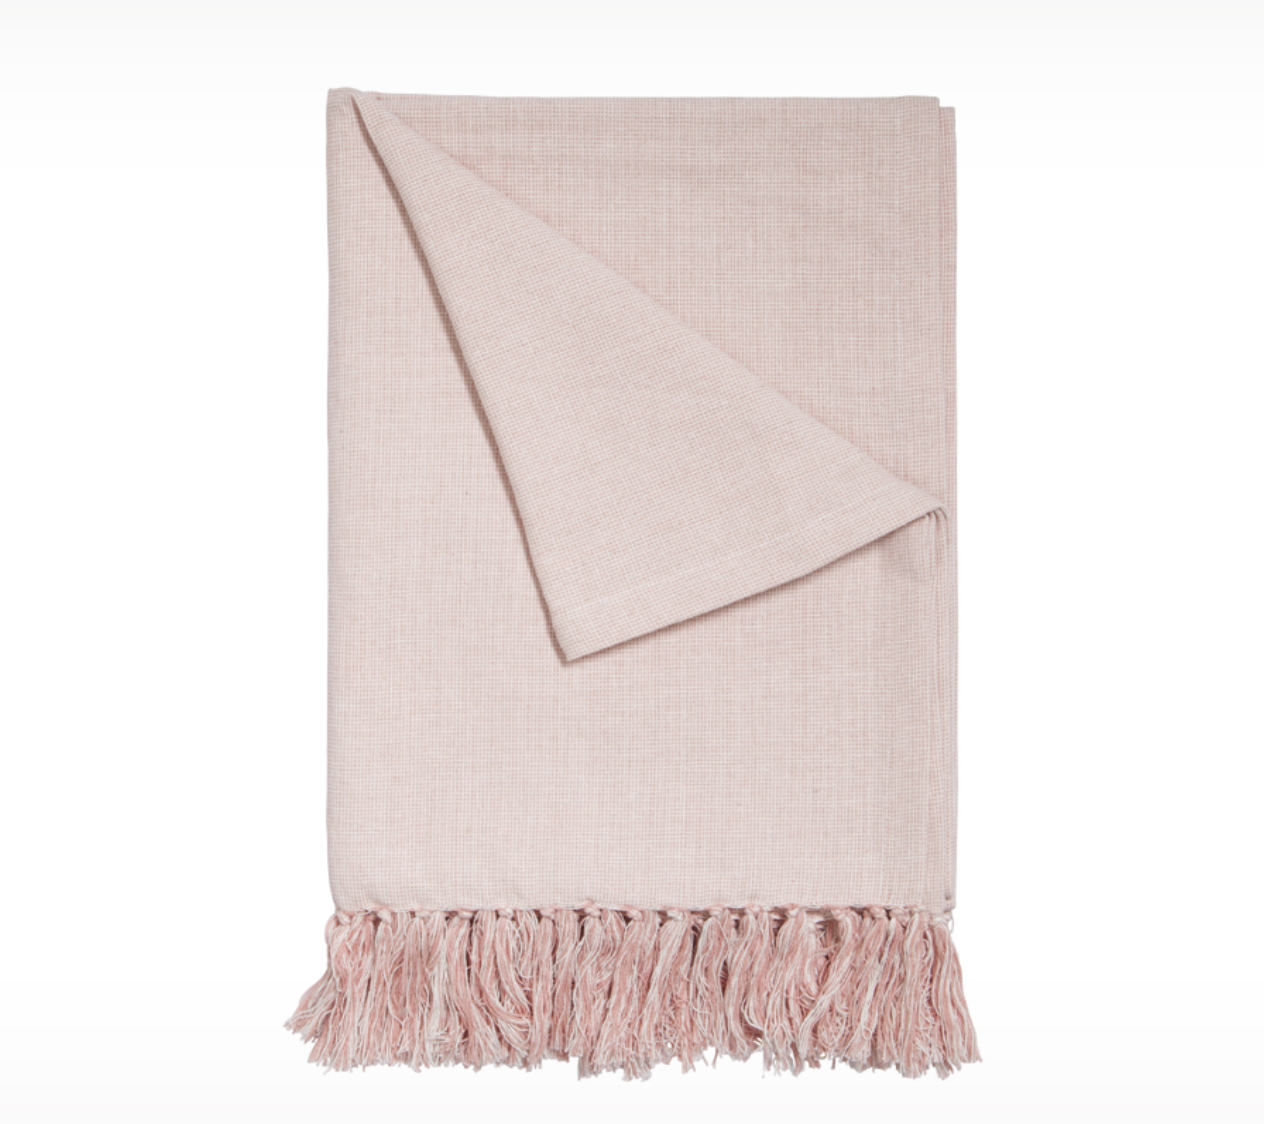 If you know me, you know I am never far away from a throw blanket. Comfort comes hand in hand with wrapping yourself up with something soft and warm! Deep down, I am a blue/green girl but  this soft blush throw  gets me rethinking things!